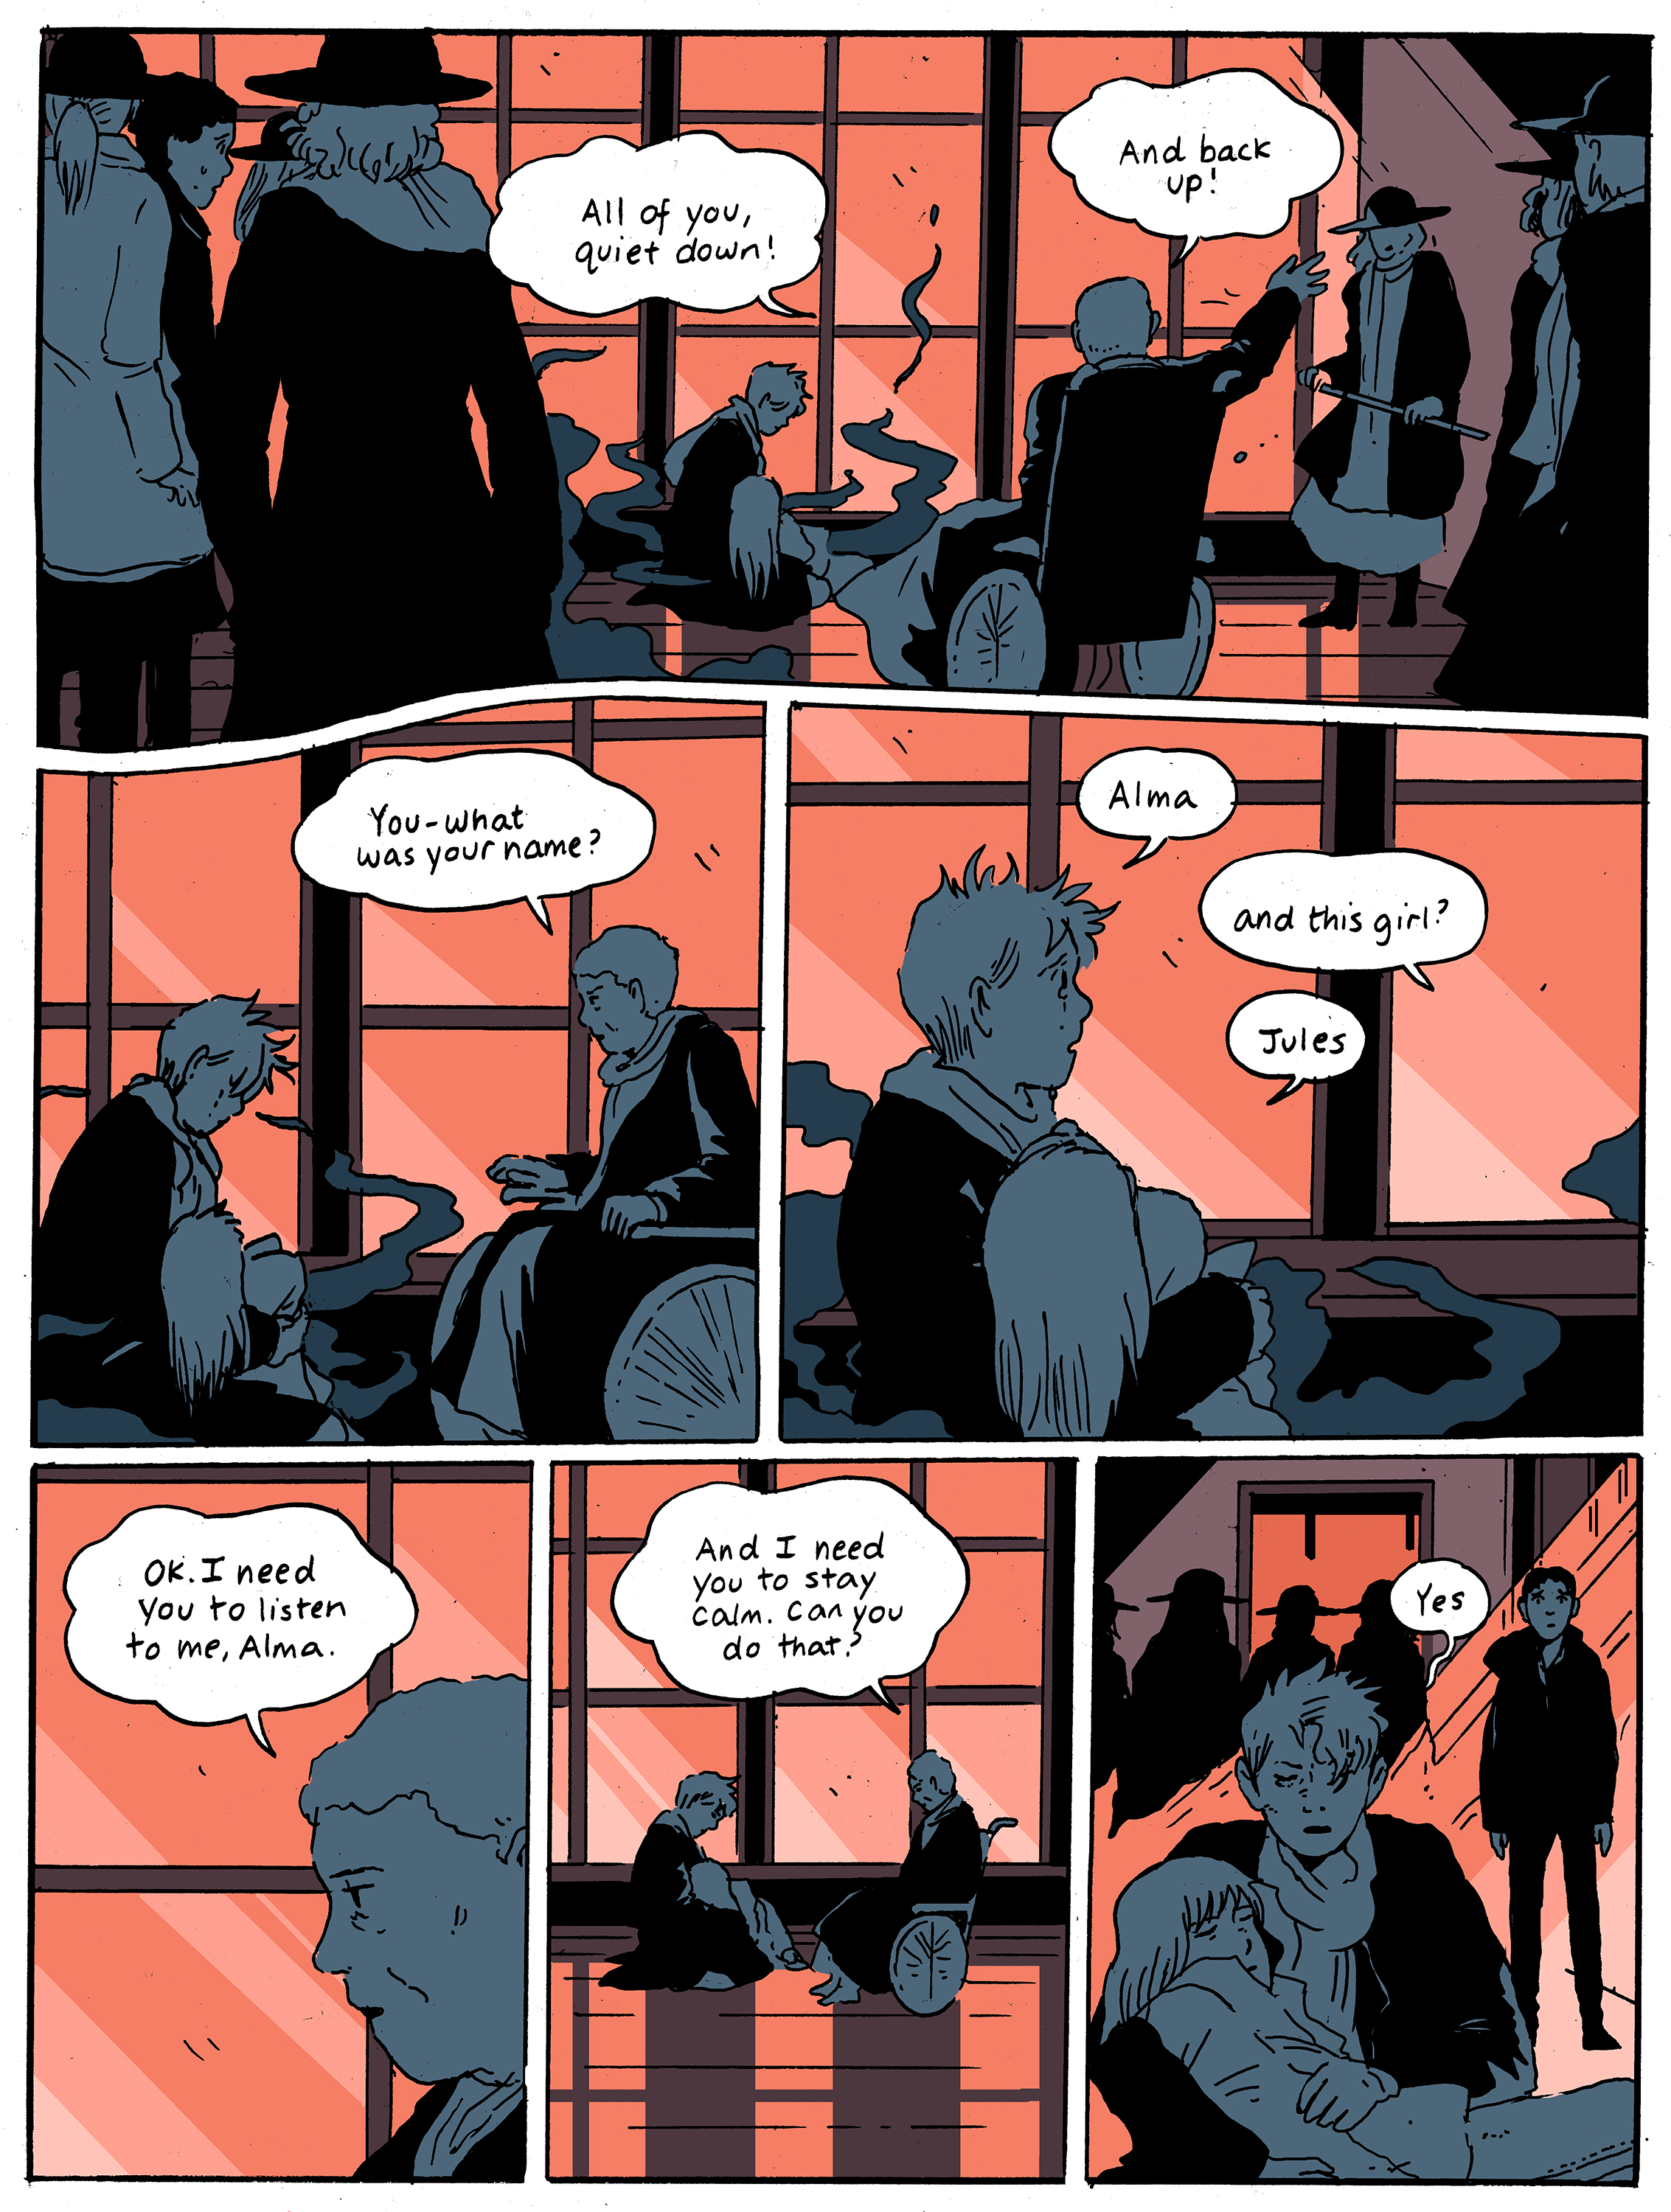 chapter18_page02.jpg